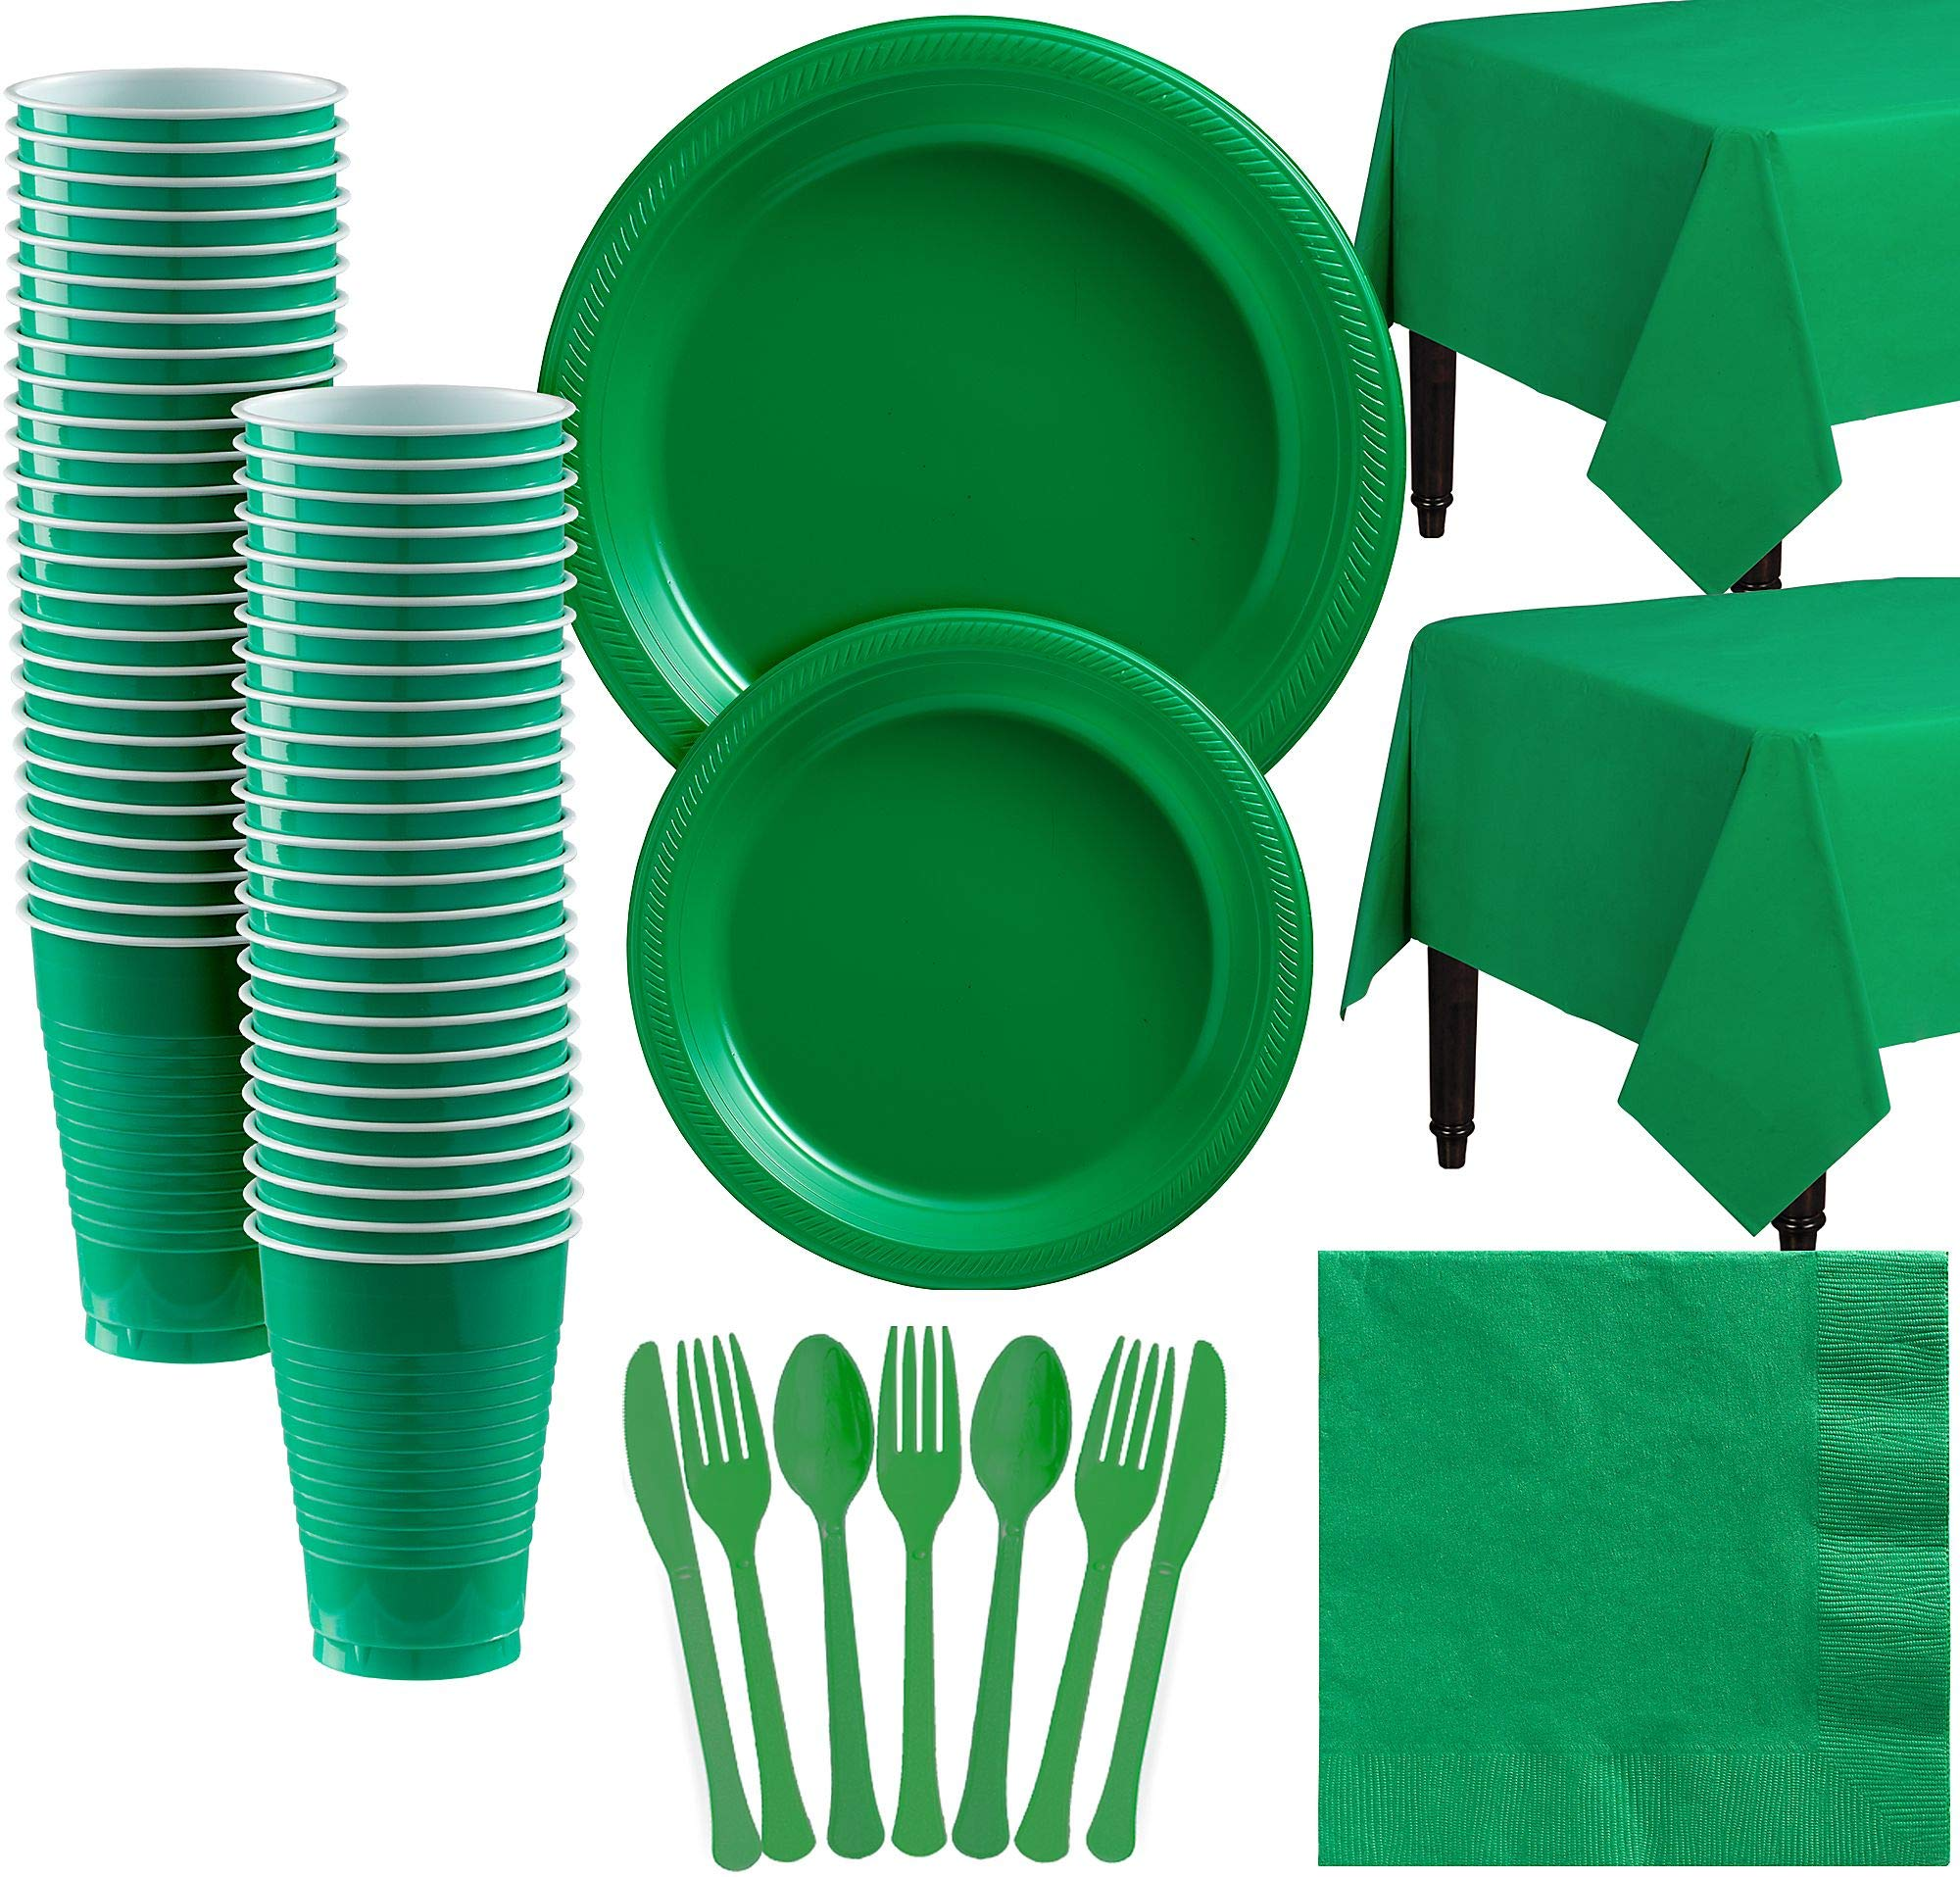 Amscan Festive Green Plastic Tableware Kit for 50 Guests, Party Supplies, Includes Table Covers, Plates, Cups and More by amscan (Image #1)